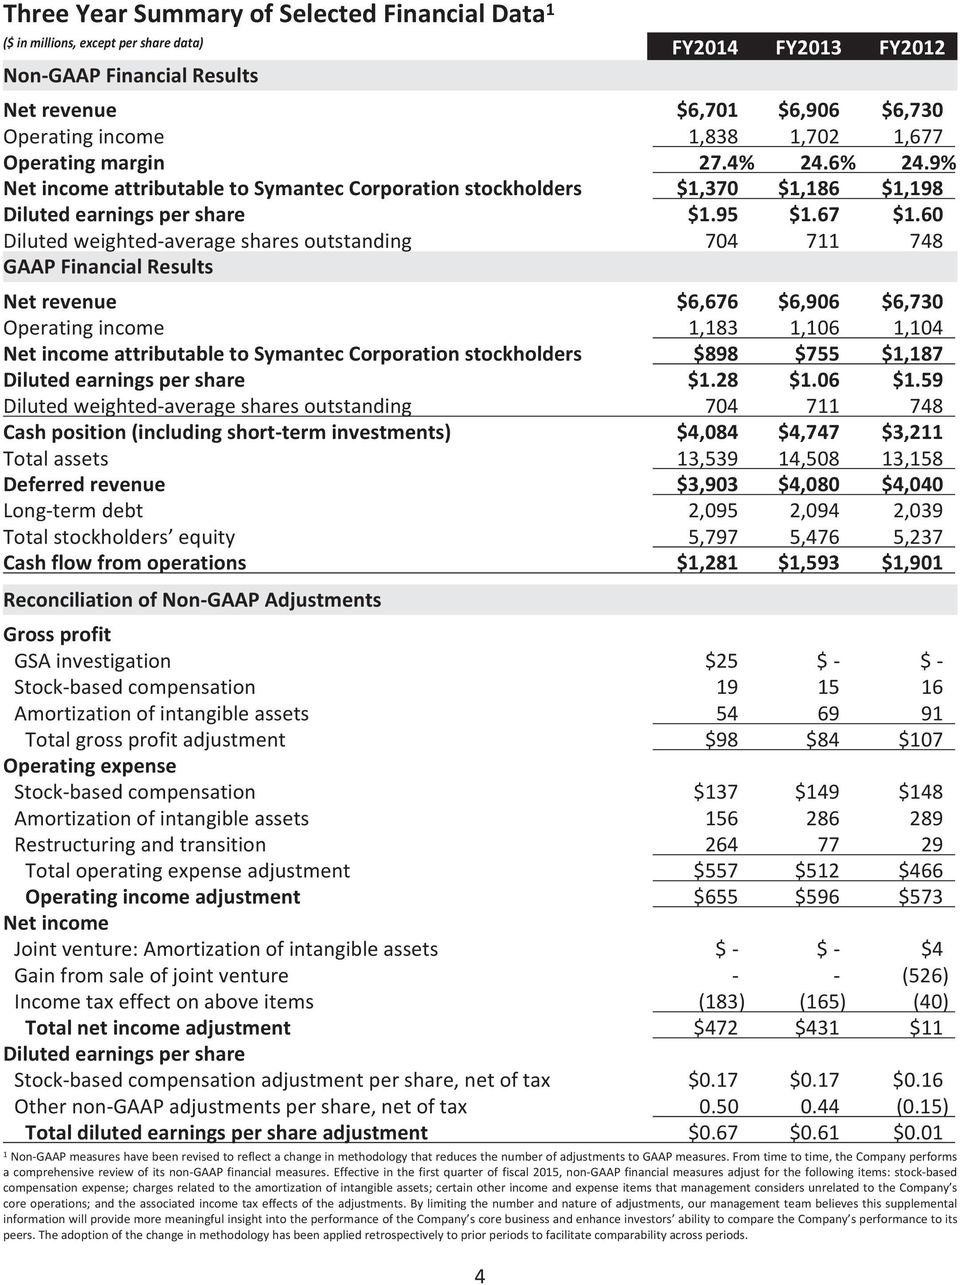 60 Diluted weighted-average shares outstanding 704 711 748 GAAP Financial Results Net revenue $6,676 $6,906 $6,730 Operating income 1,183 1,106 1,104 Net income attributable to Symantec Corporation